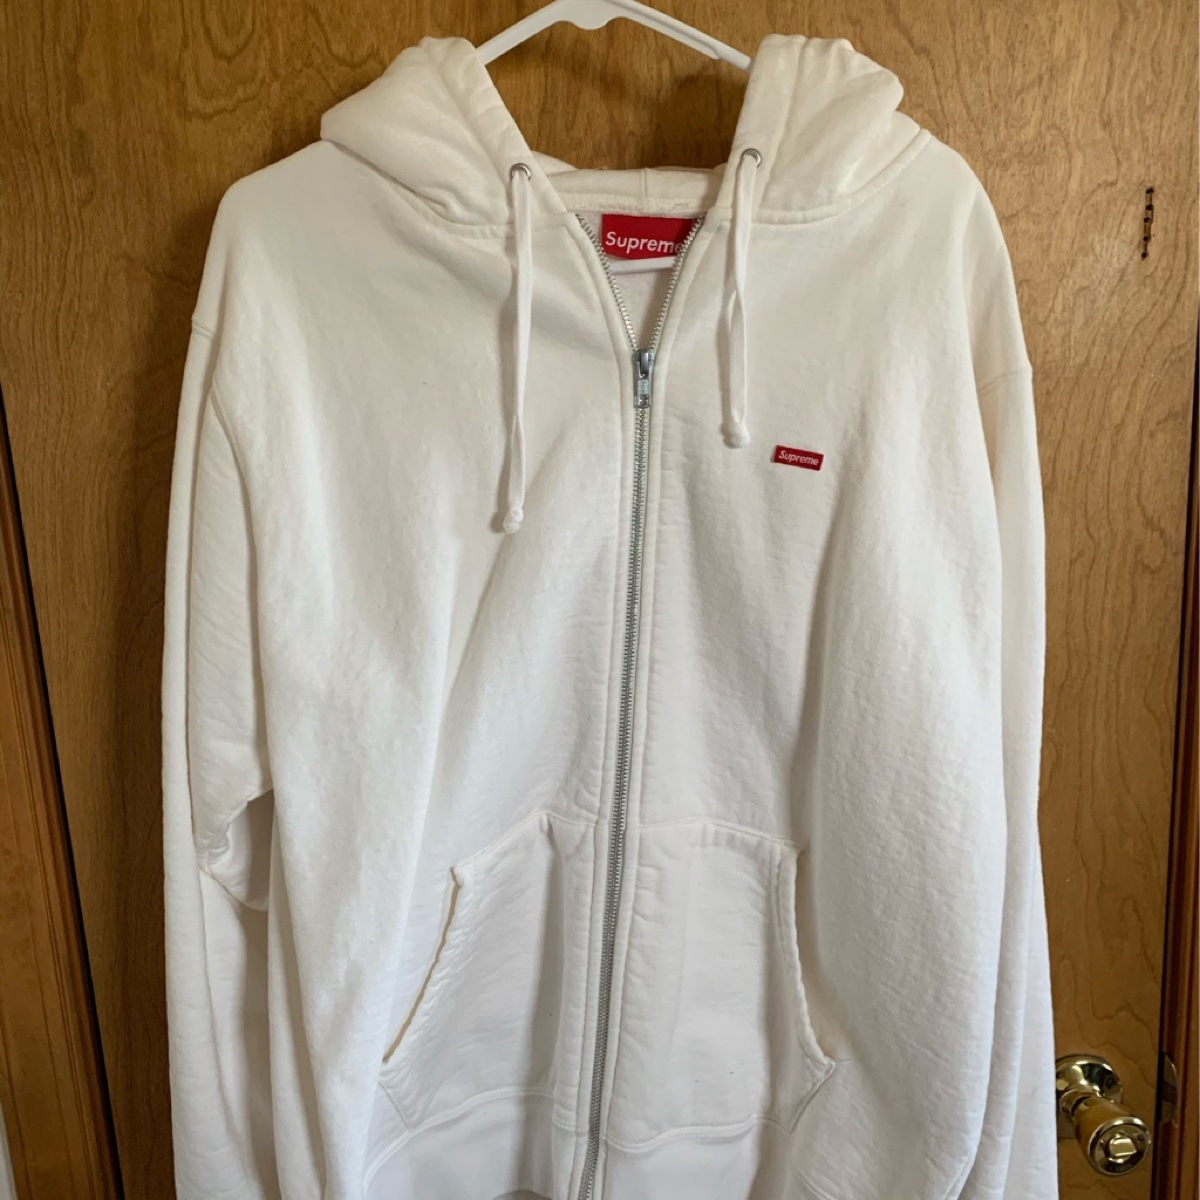 Supreme Small Box Zip up Sweatshirt White